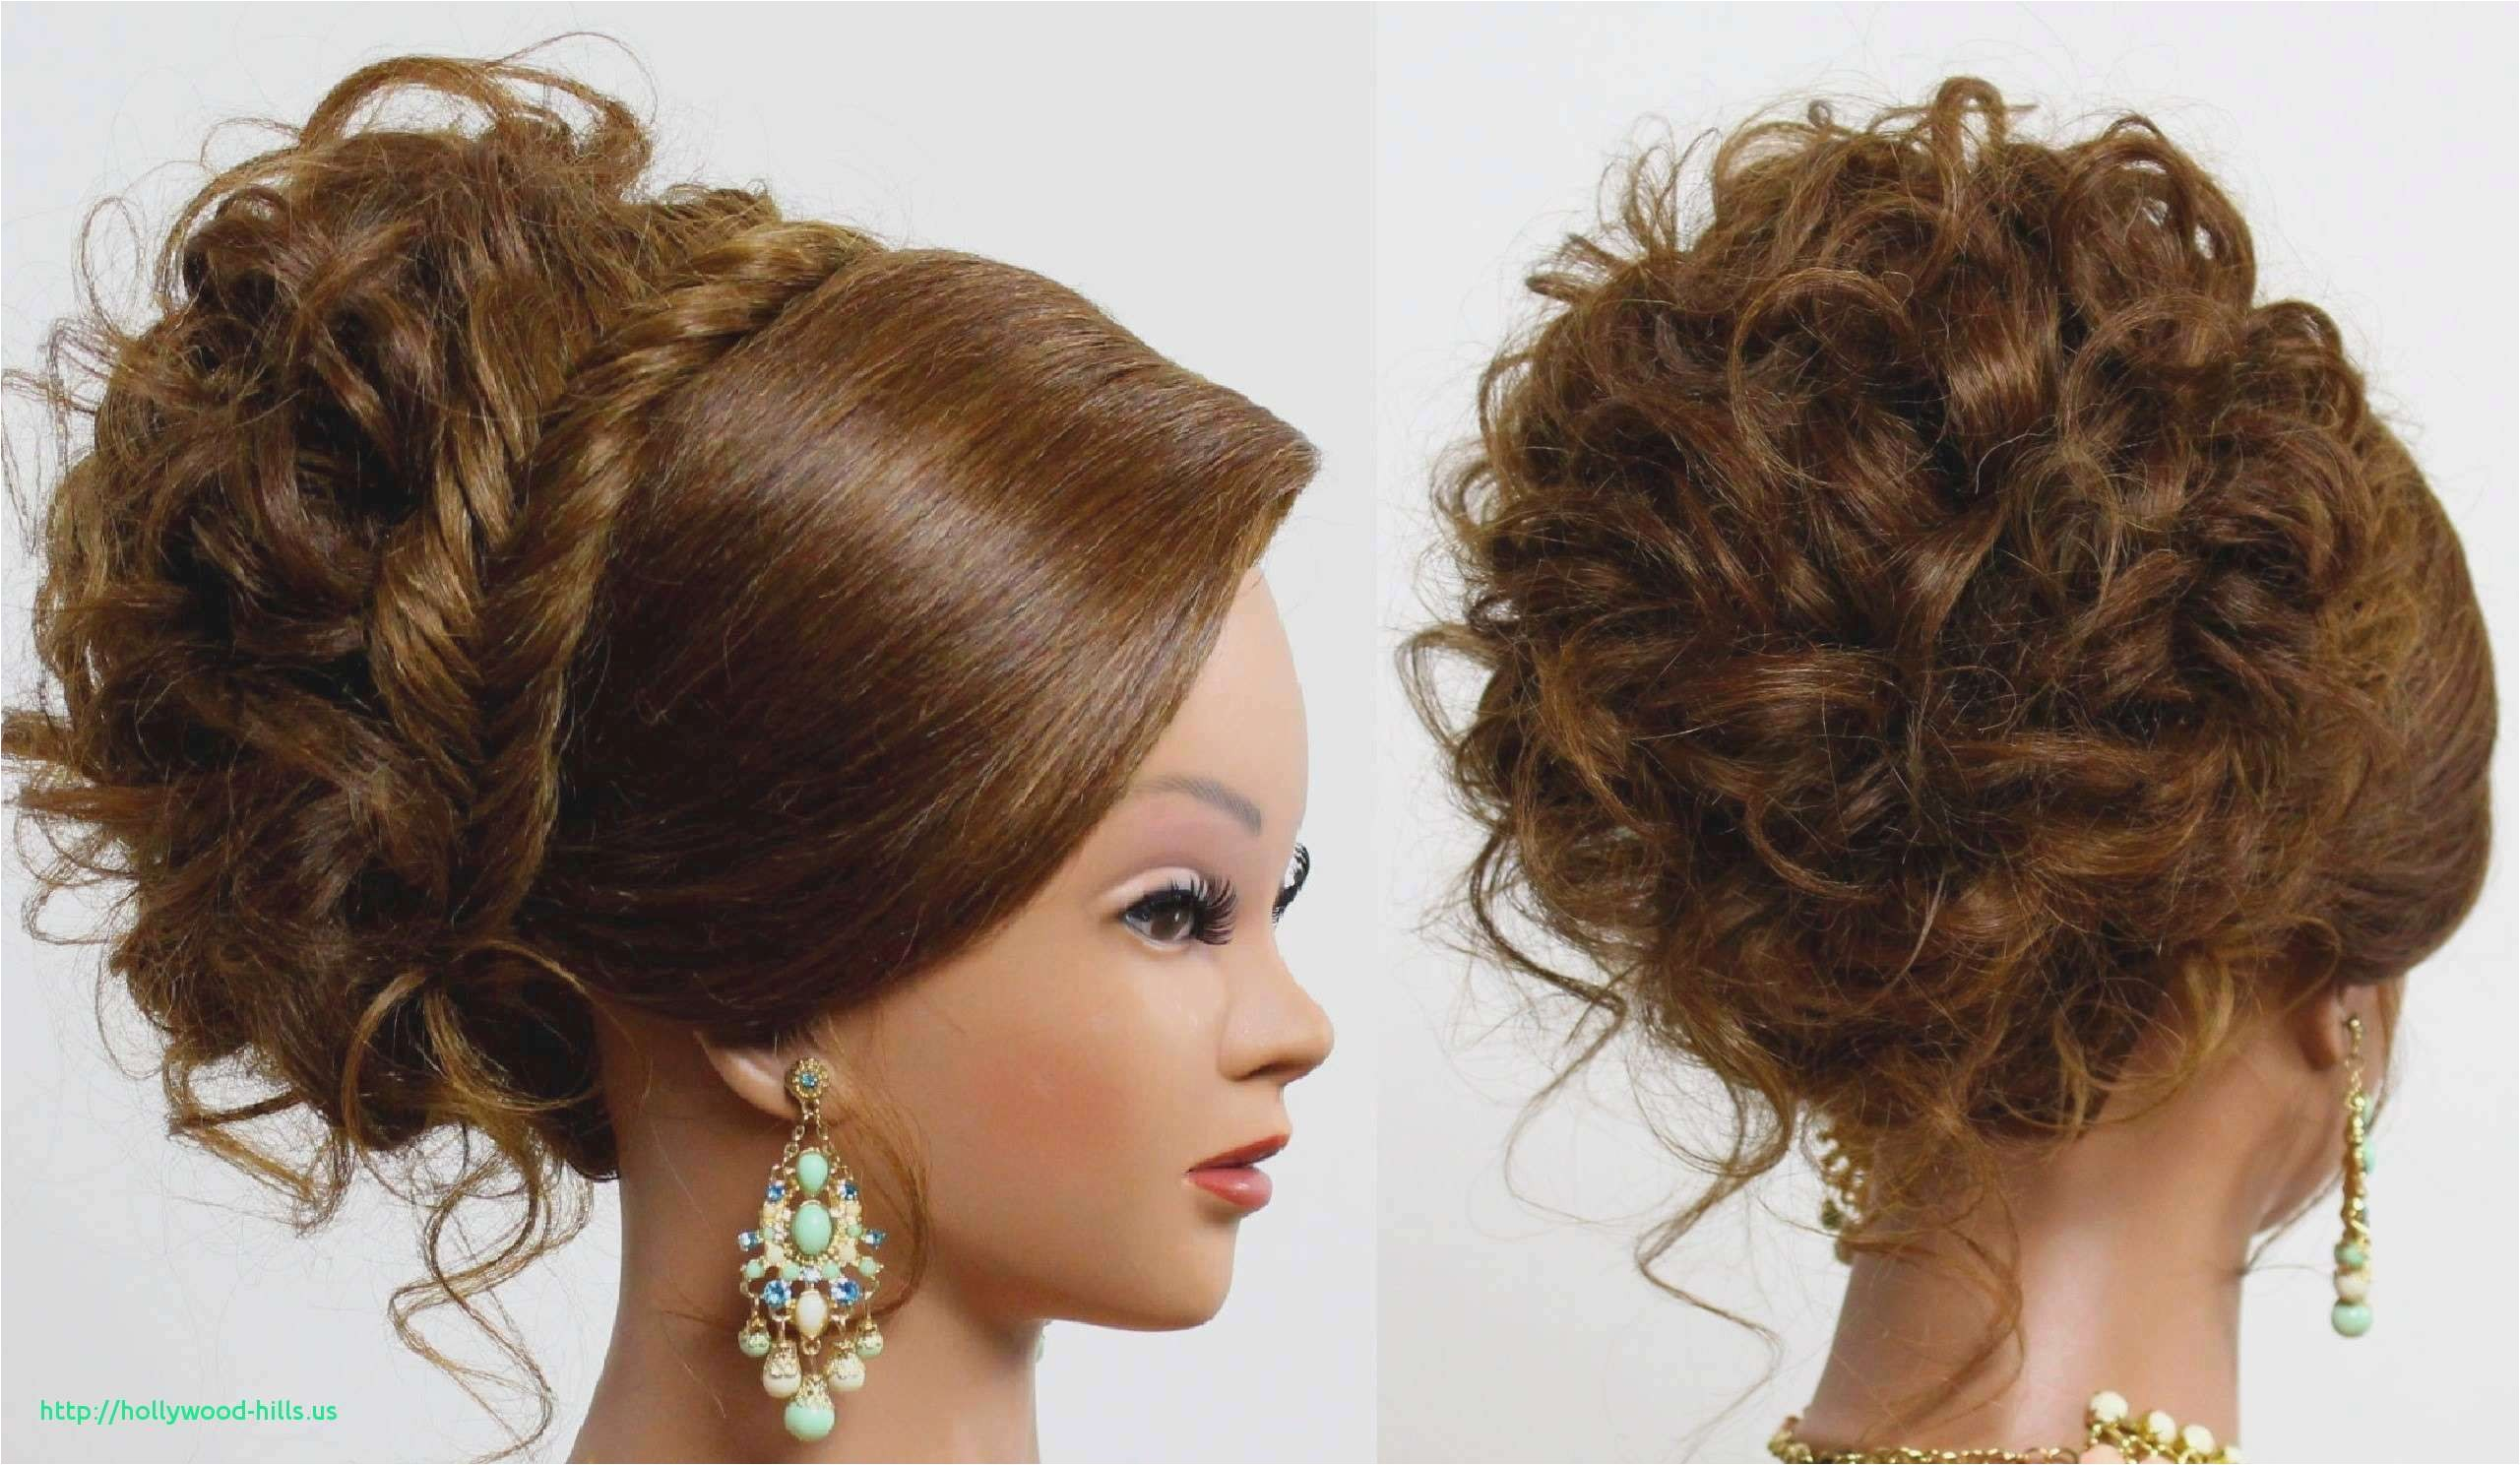 Hairstyles with Volume at the Crown Beautiful Elegant evening Hairstyles for Long Hair Awesome Haircuts 0d